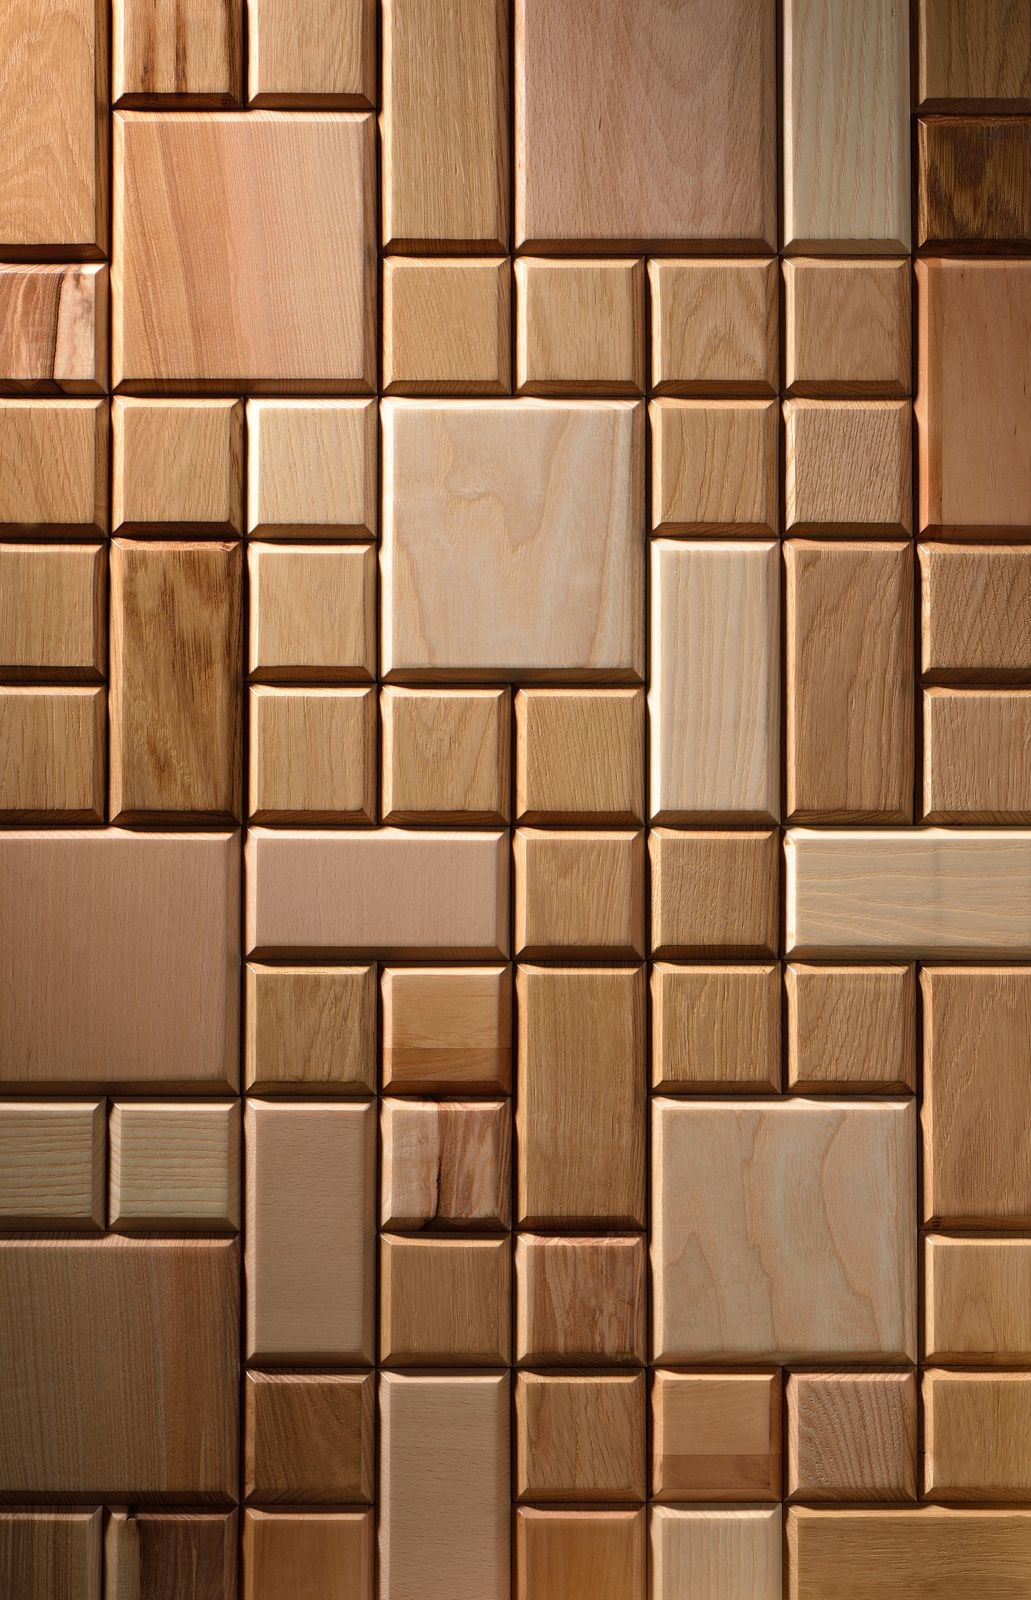 Wooden Wall Panel Tessellated Nature Wooden Wall Panels Wall Panel Design Interior Wall Design